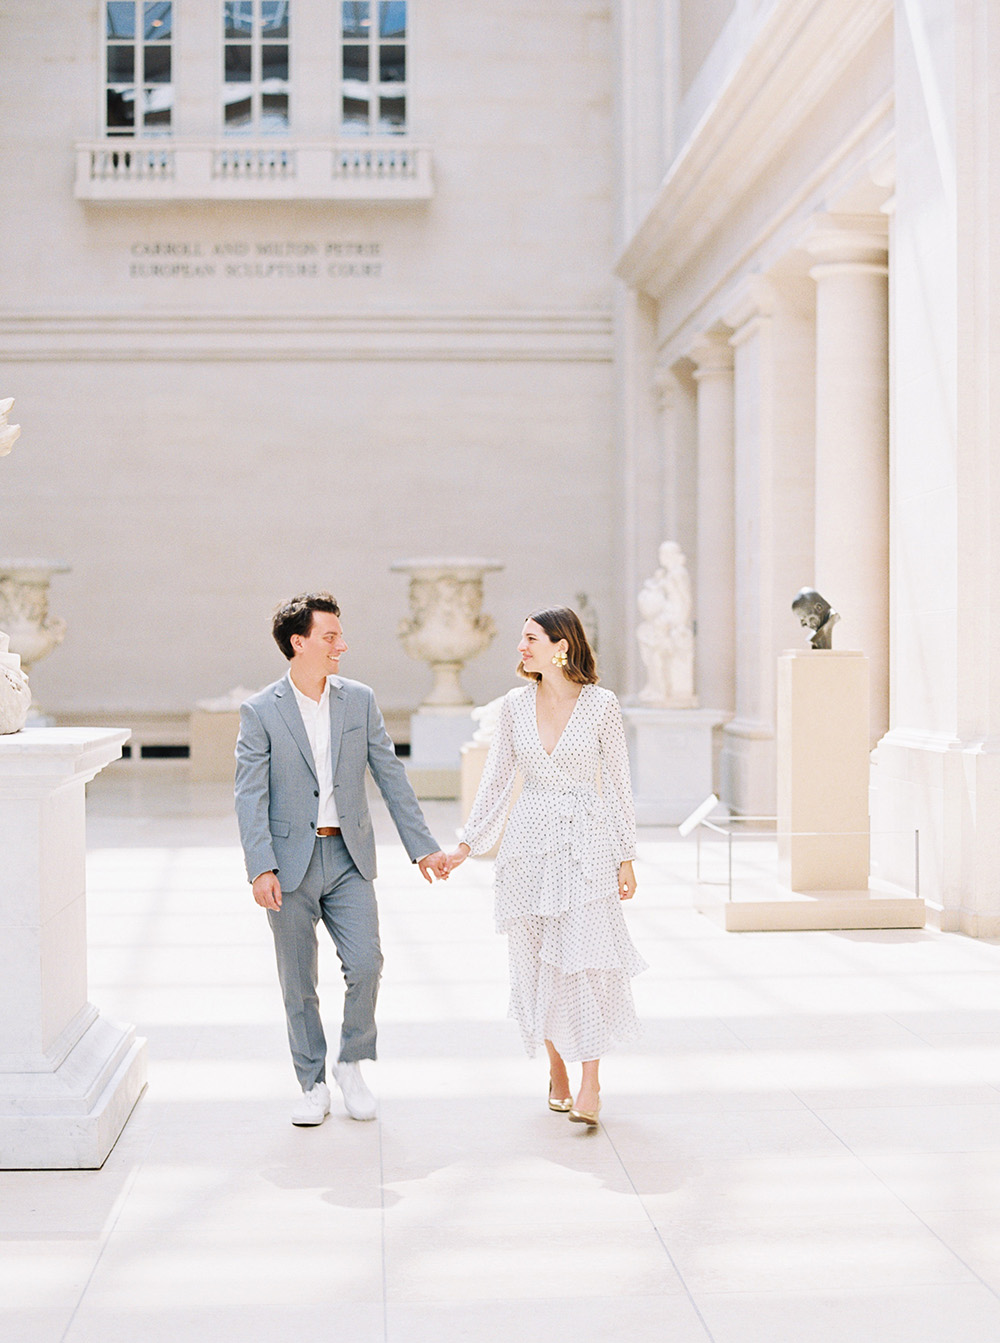 Emilee & Patrick The Met 2.jpg